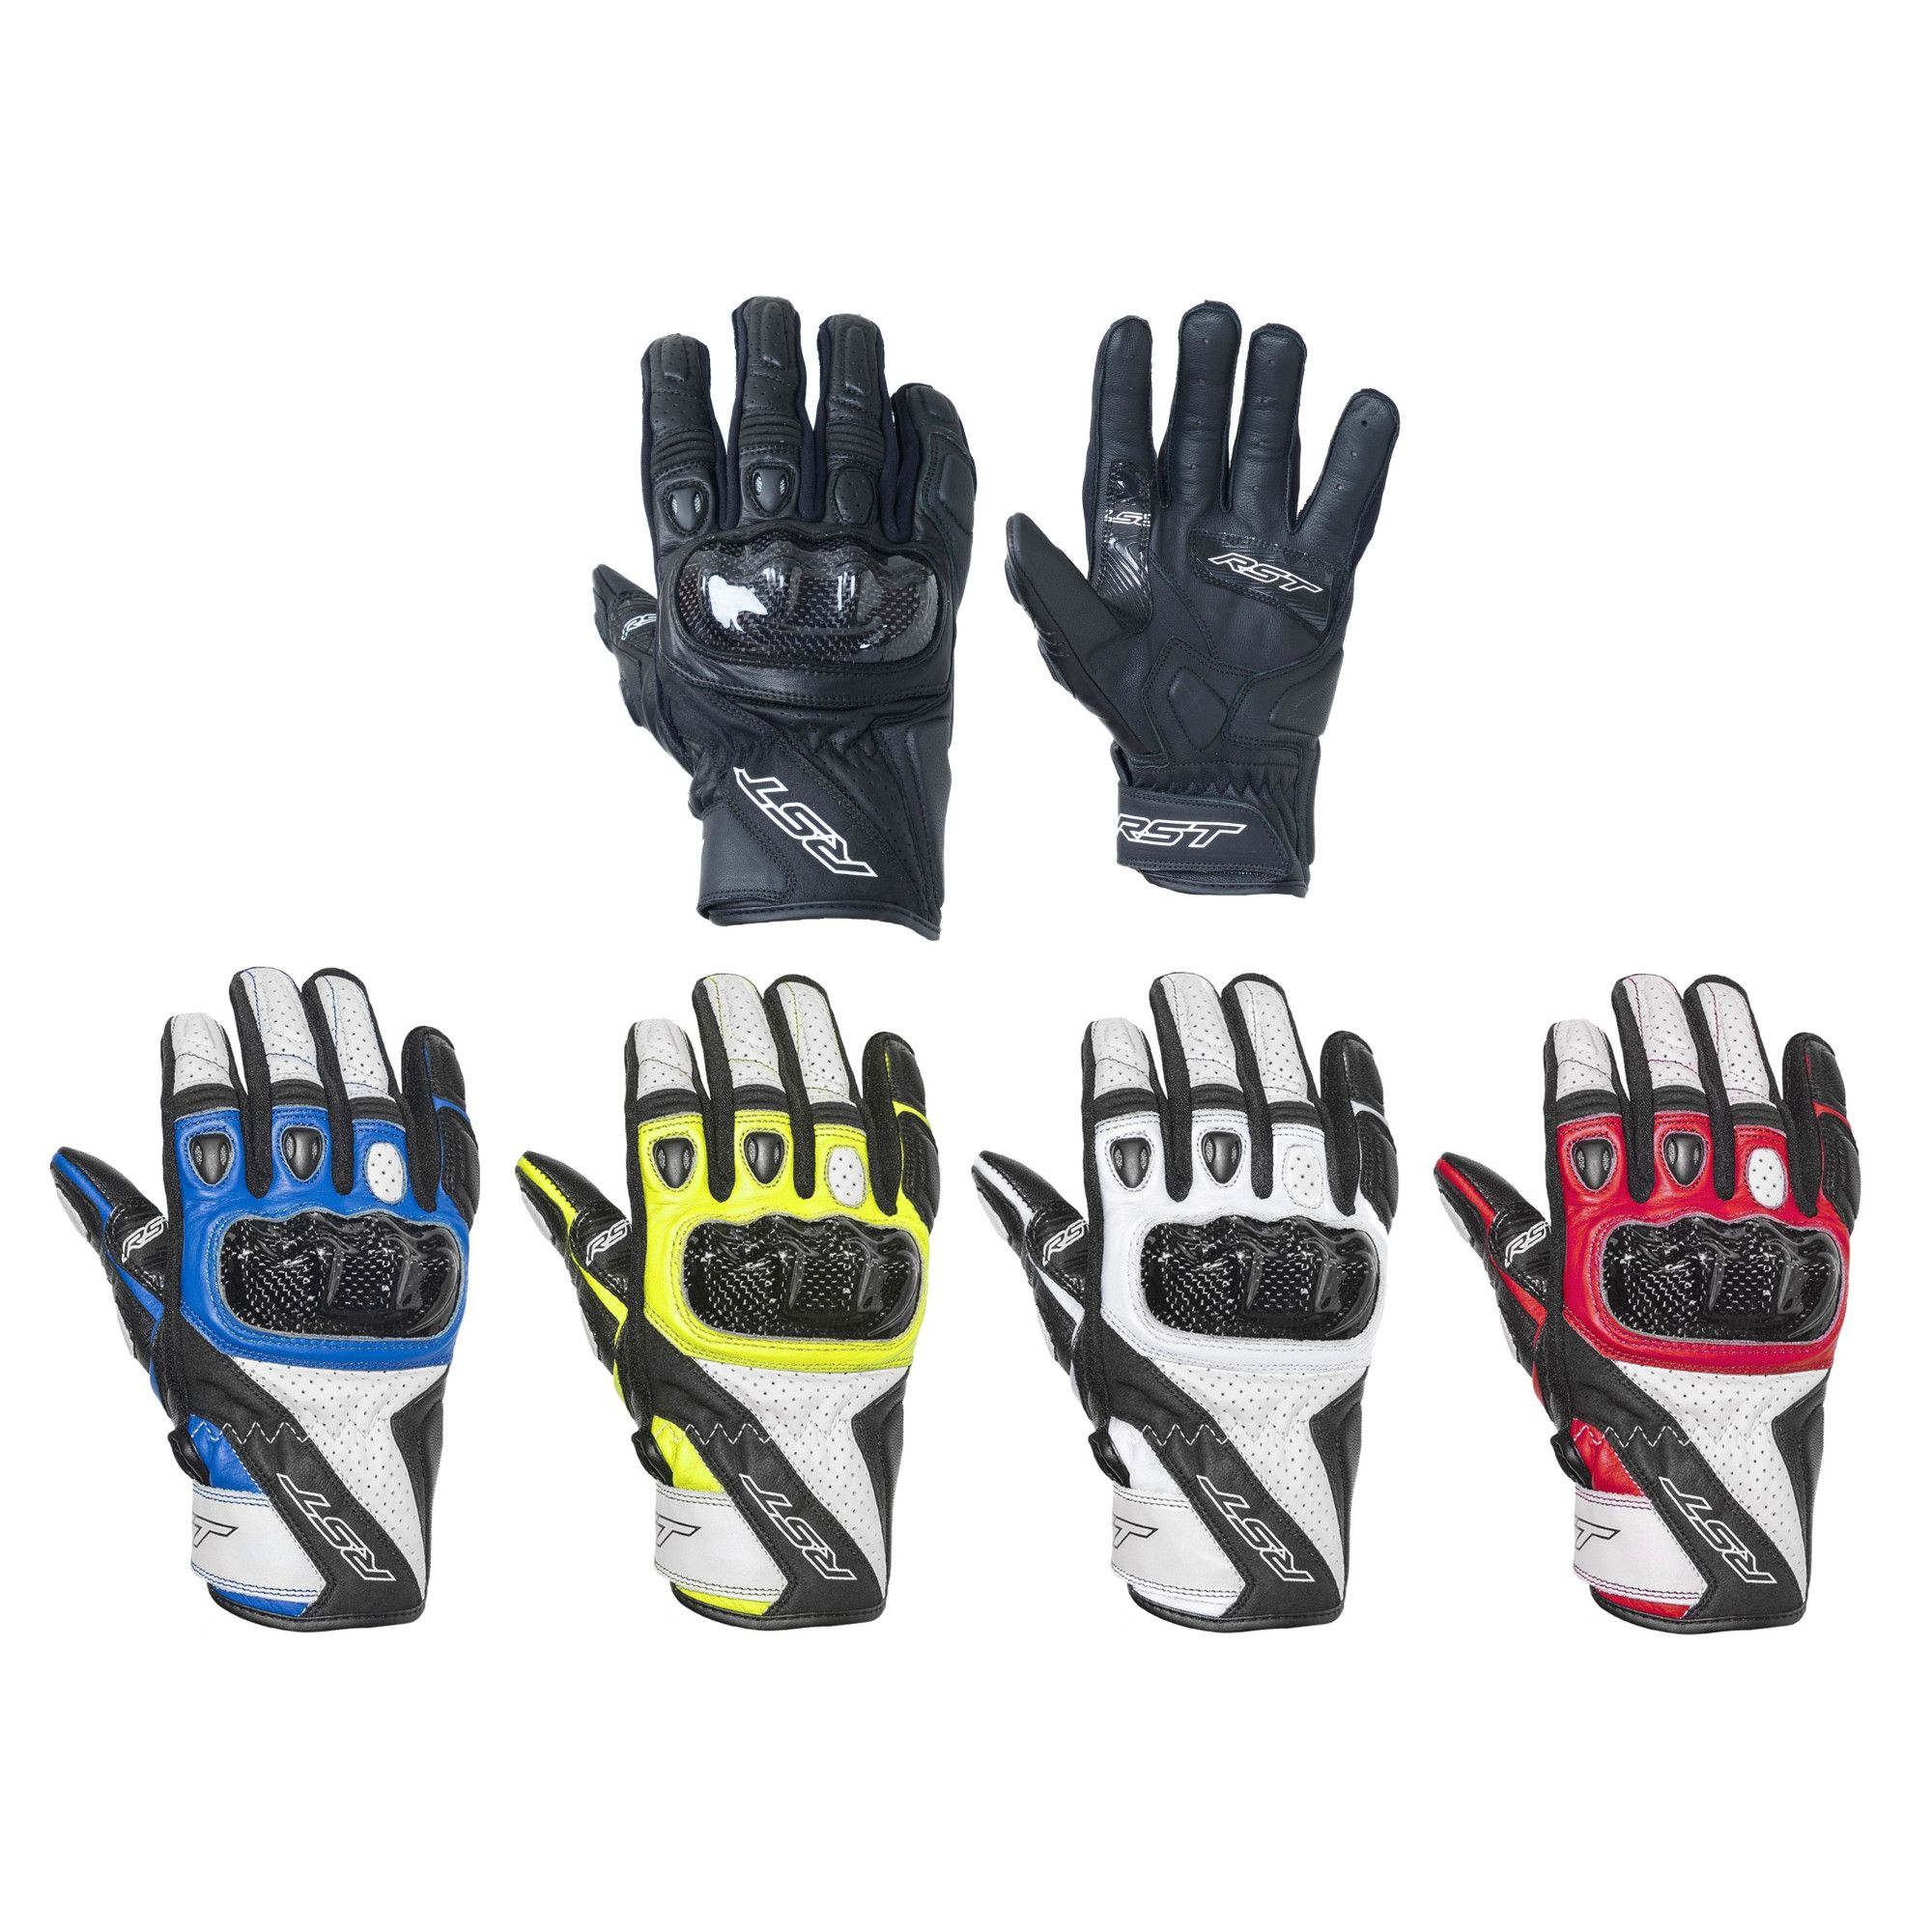 RST 2128 Delta 3 CE Motorcycle Motorbike Double Leather Armoured Gloves Black